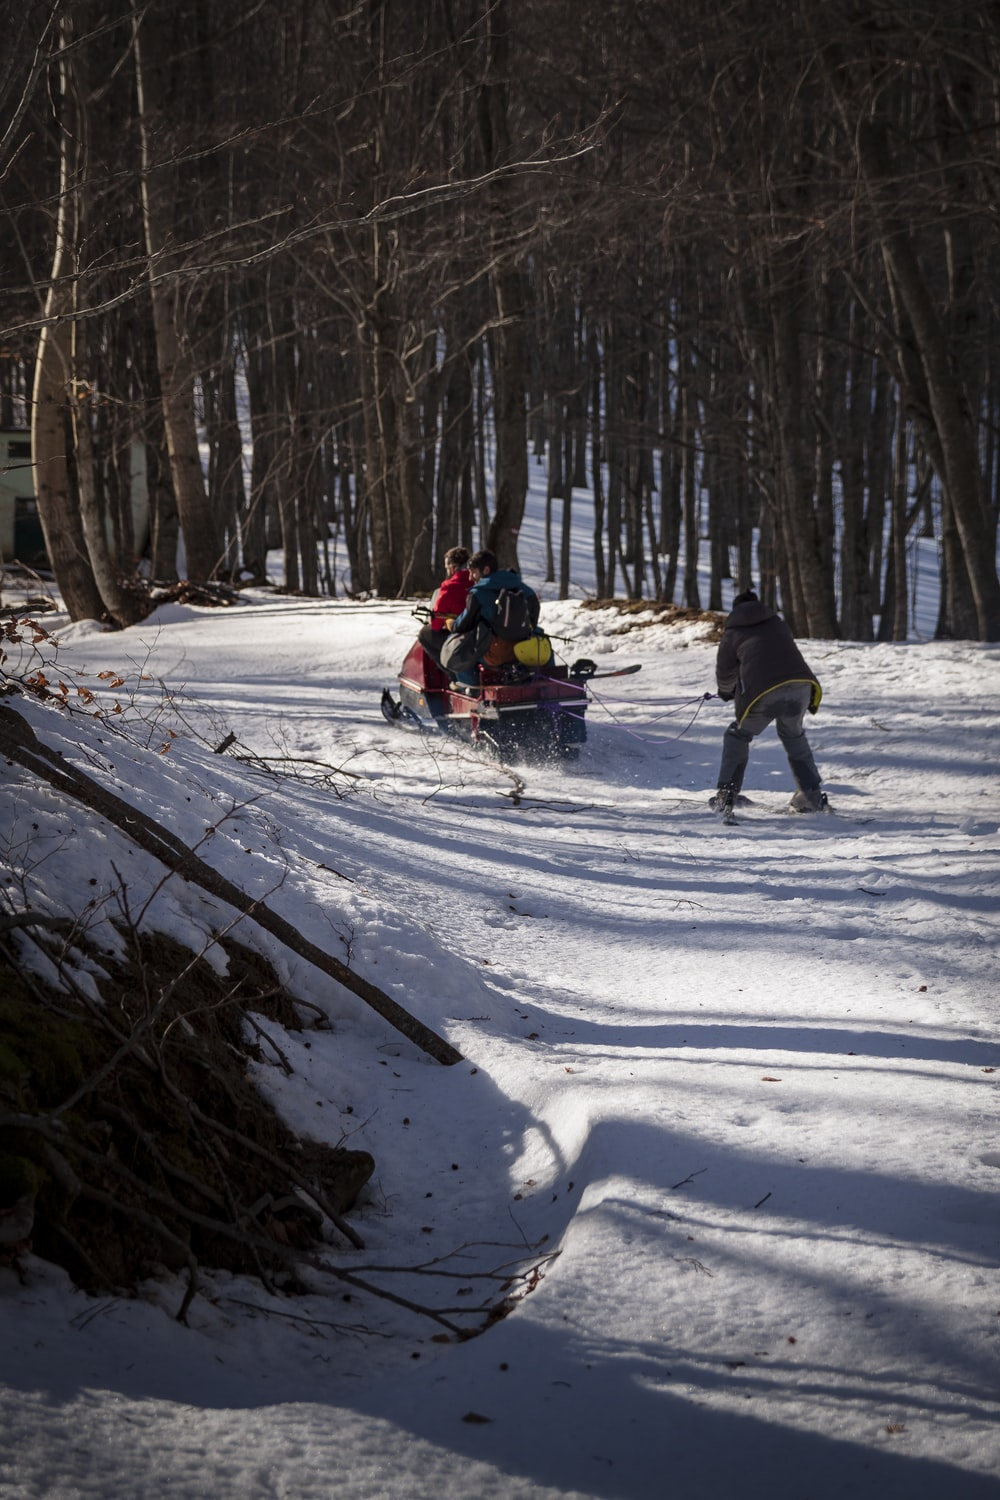 people riding ski lift on snow covered ground during daytime